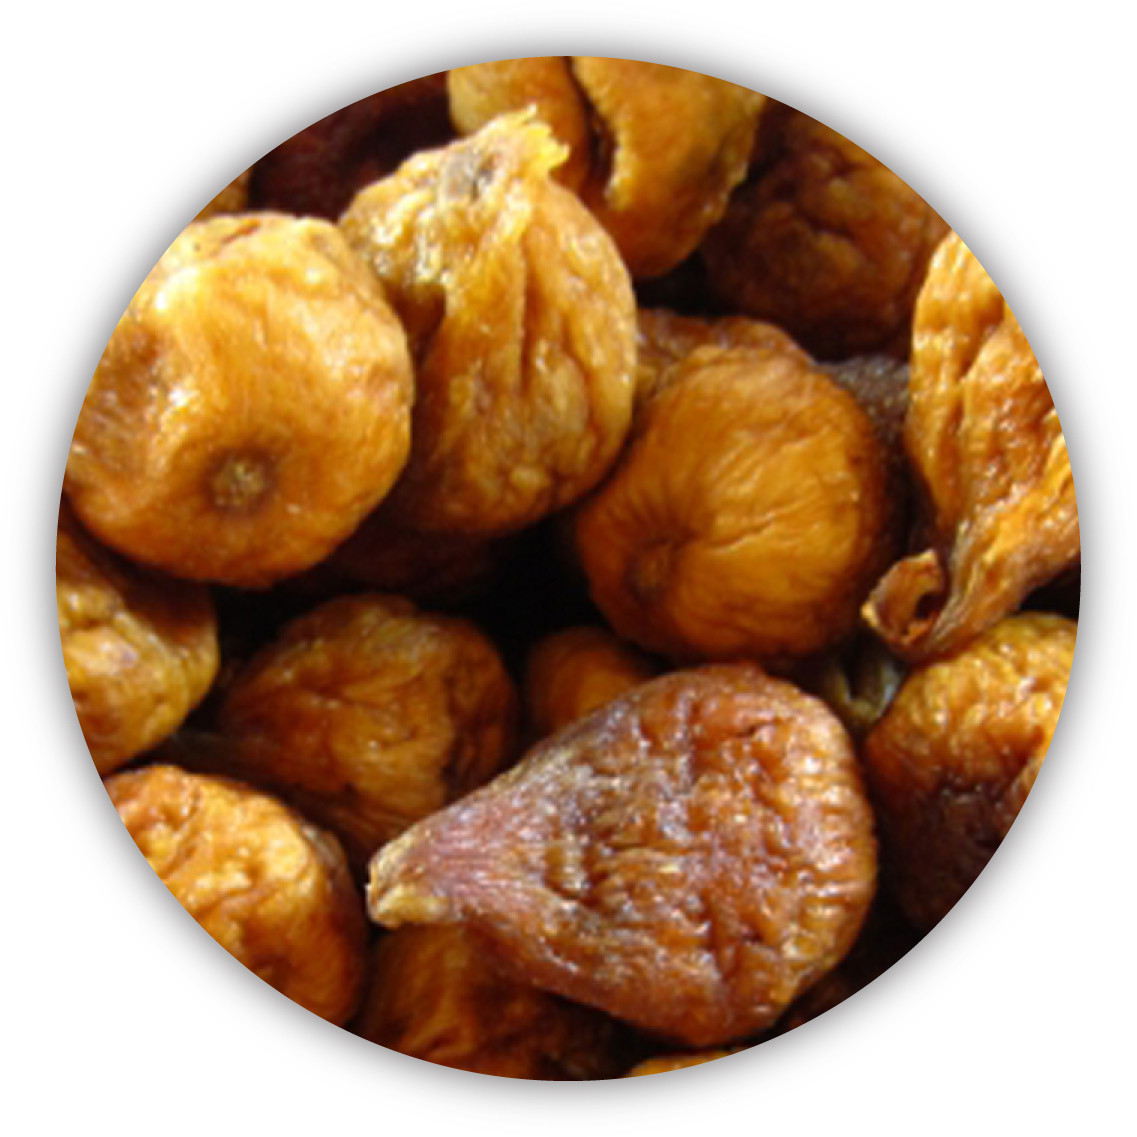 Figs Golden Blend of California and Turkish 5# - Bazzini Nuts